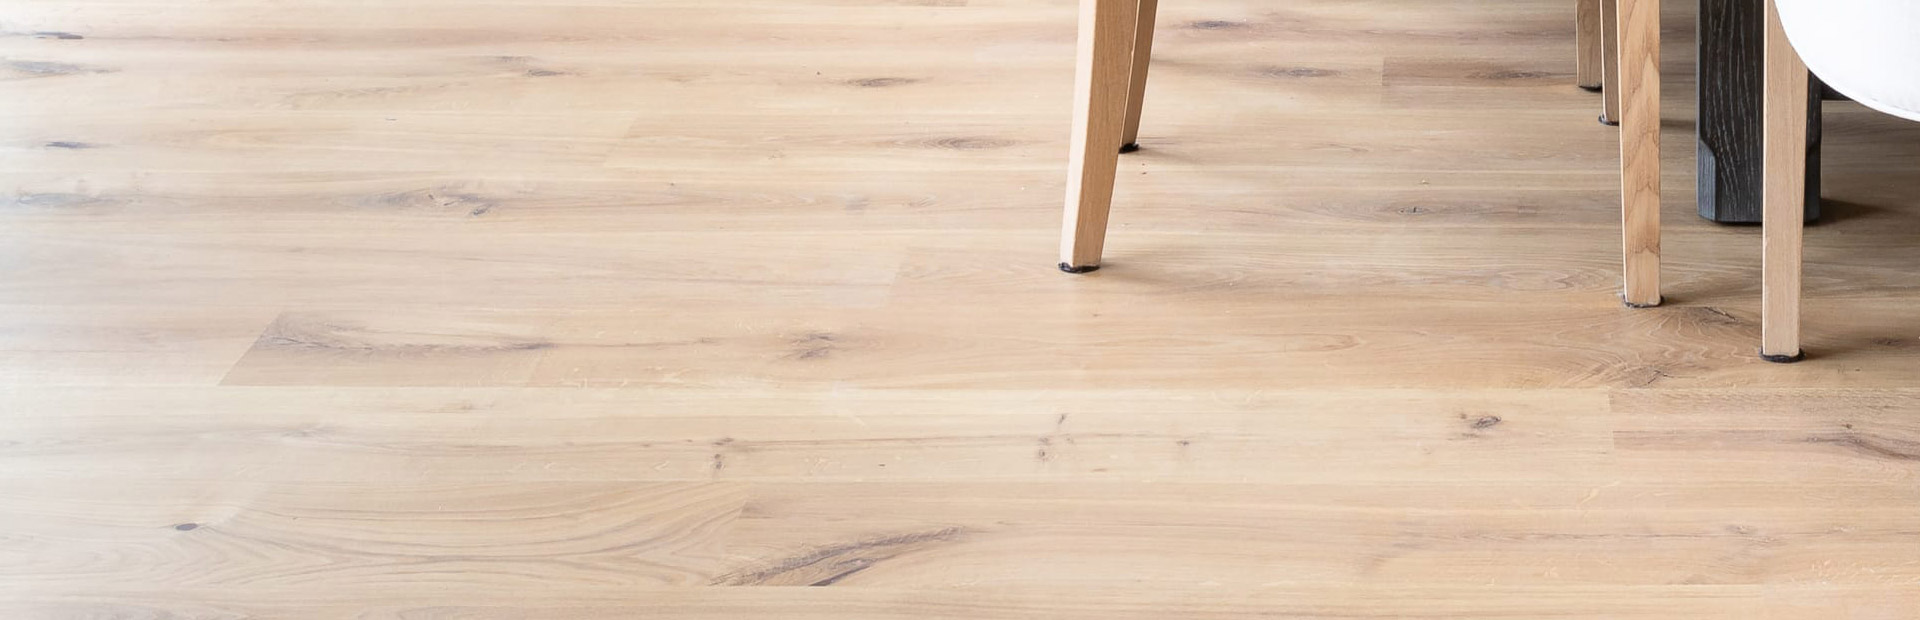 CMC Hardwood Floors banner